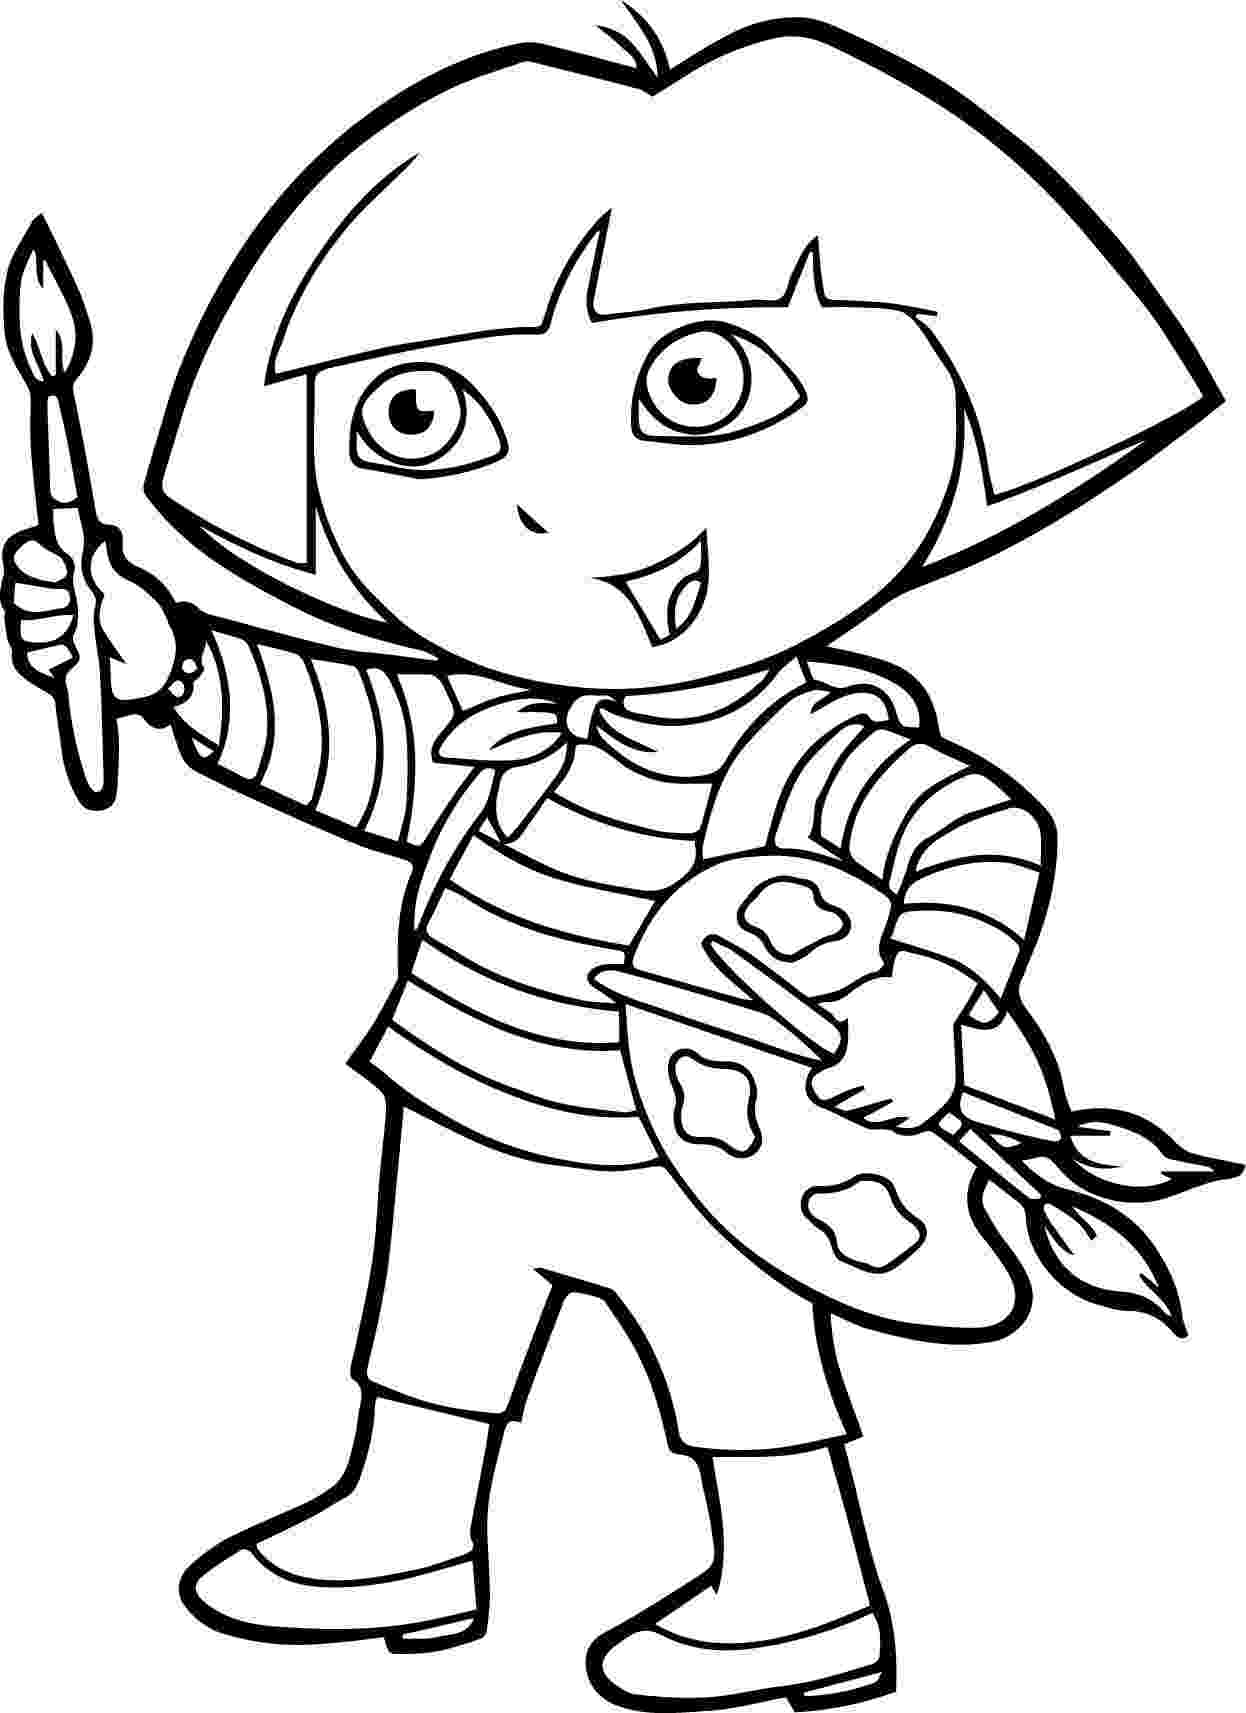 dora painting pictures print download dora coloring pages to learn new things dora pictures painting